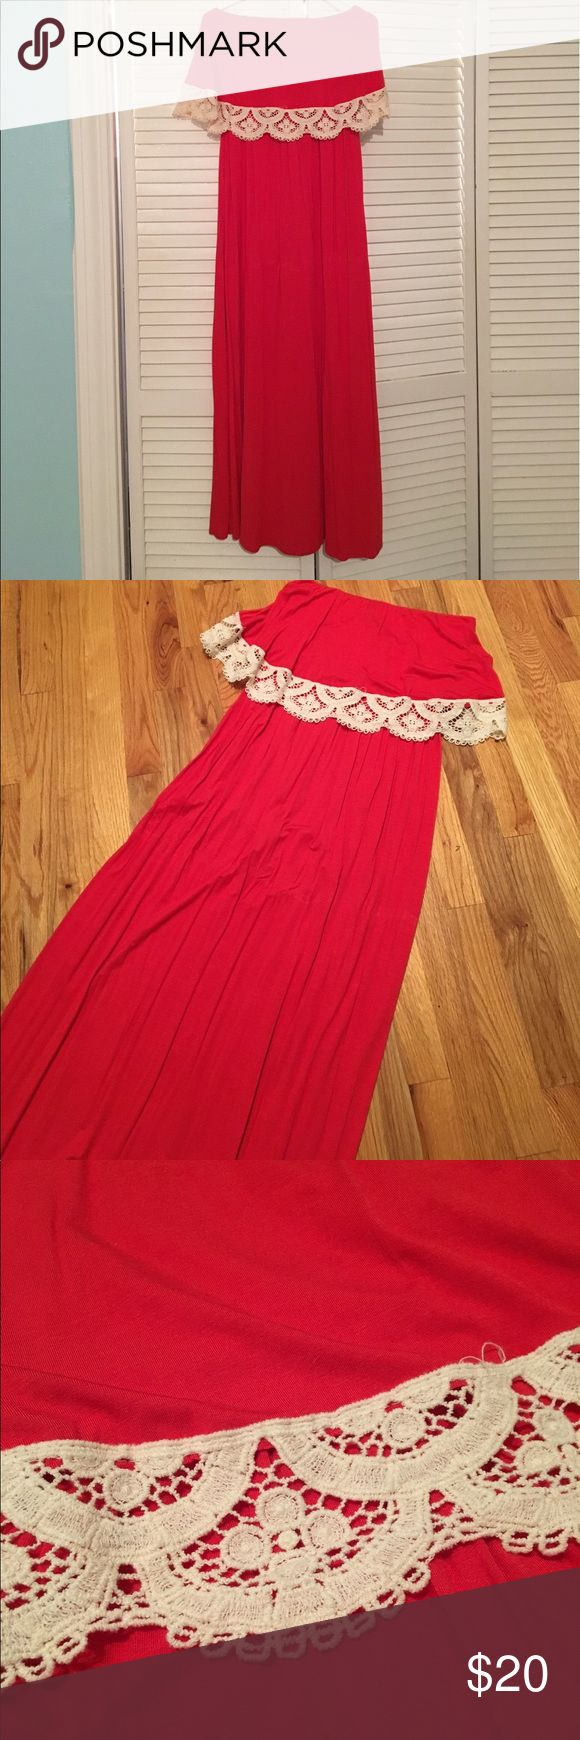 ⬇️Final Price Drop⬇️ Red Maxi Dress Red maxi dress. EUC (however, I did cut off the black straps for the hanger). Worn once. Love Culture Dresses Maxi